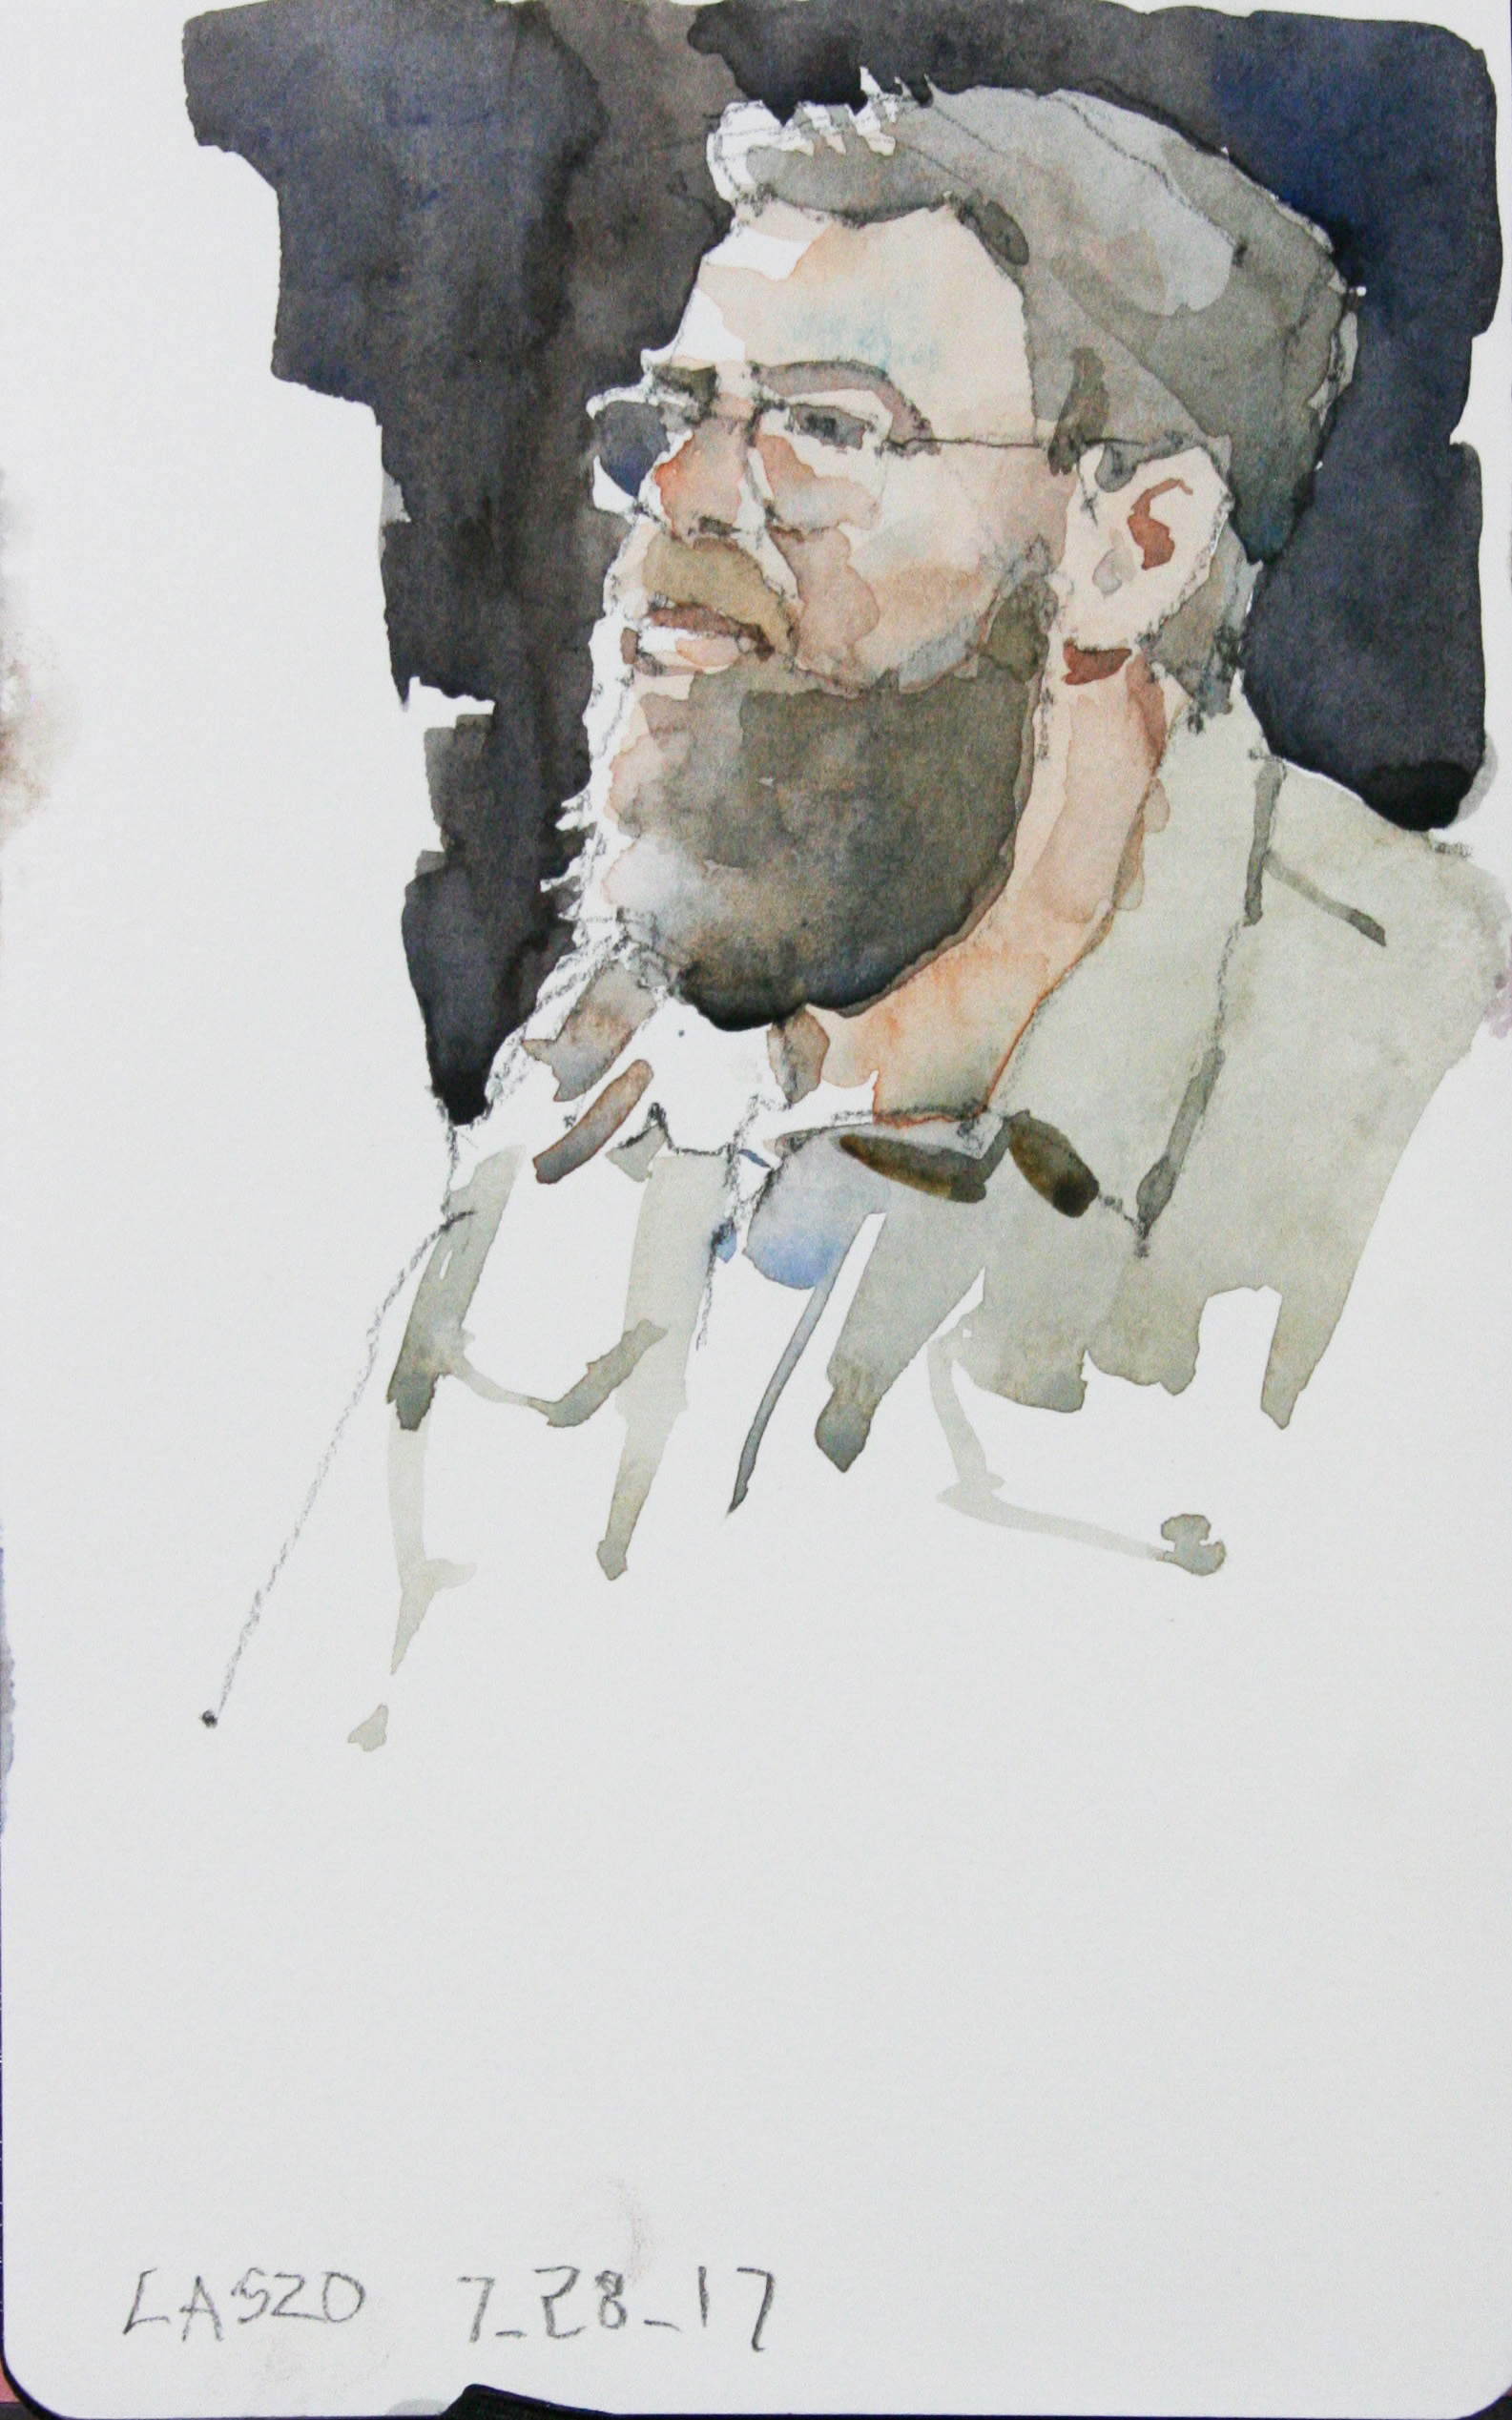 Jeff Suntala did this 45 minute watercolor.